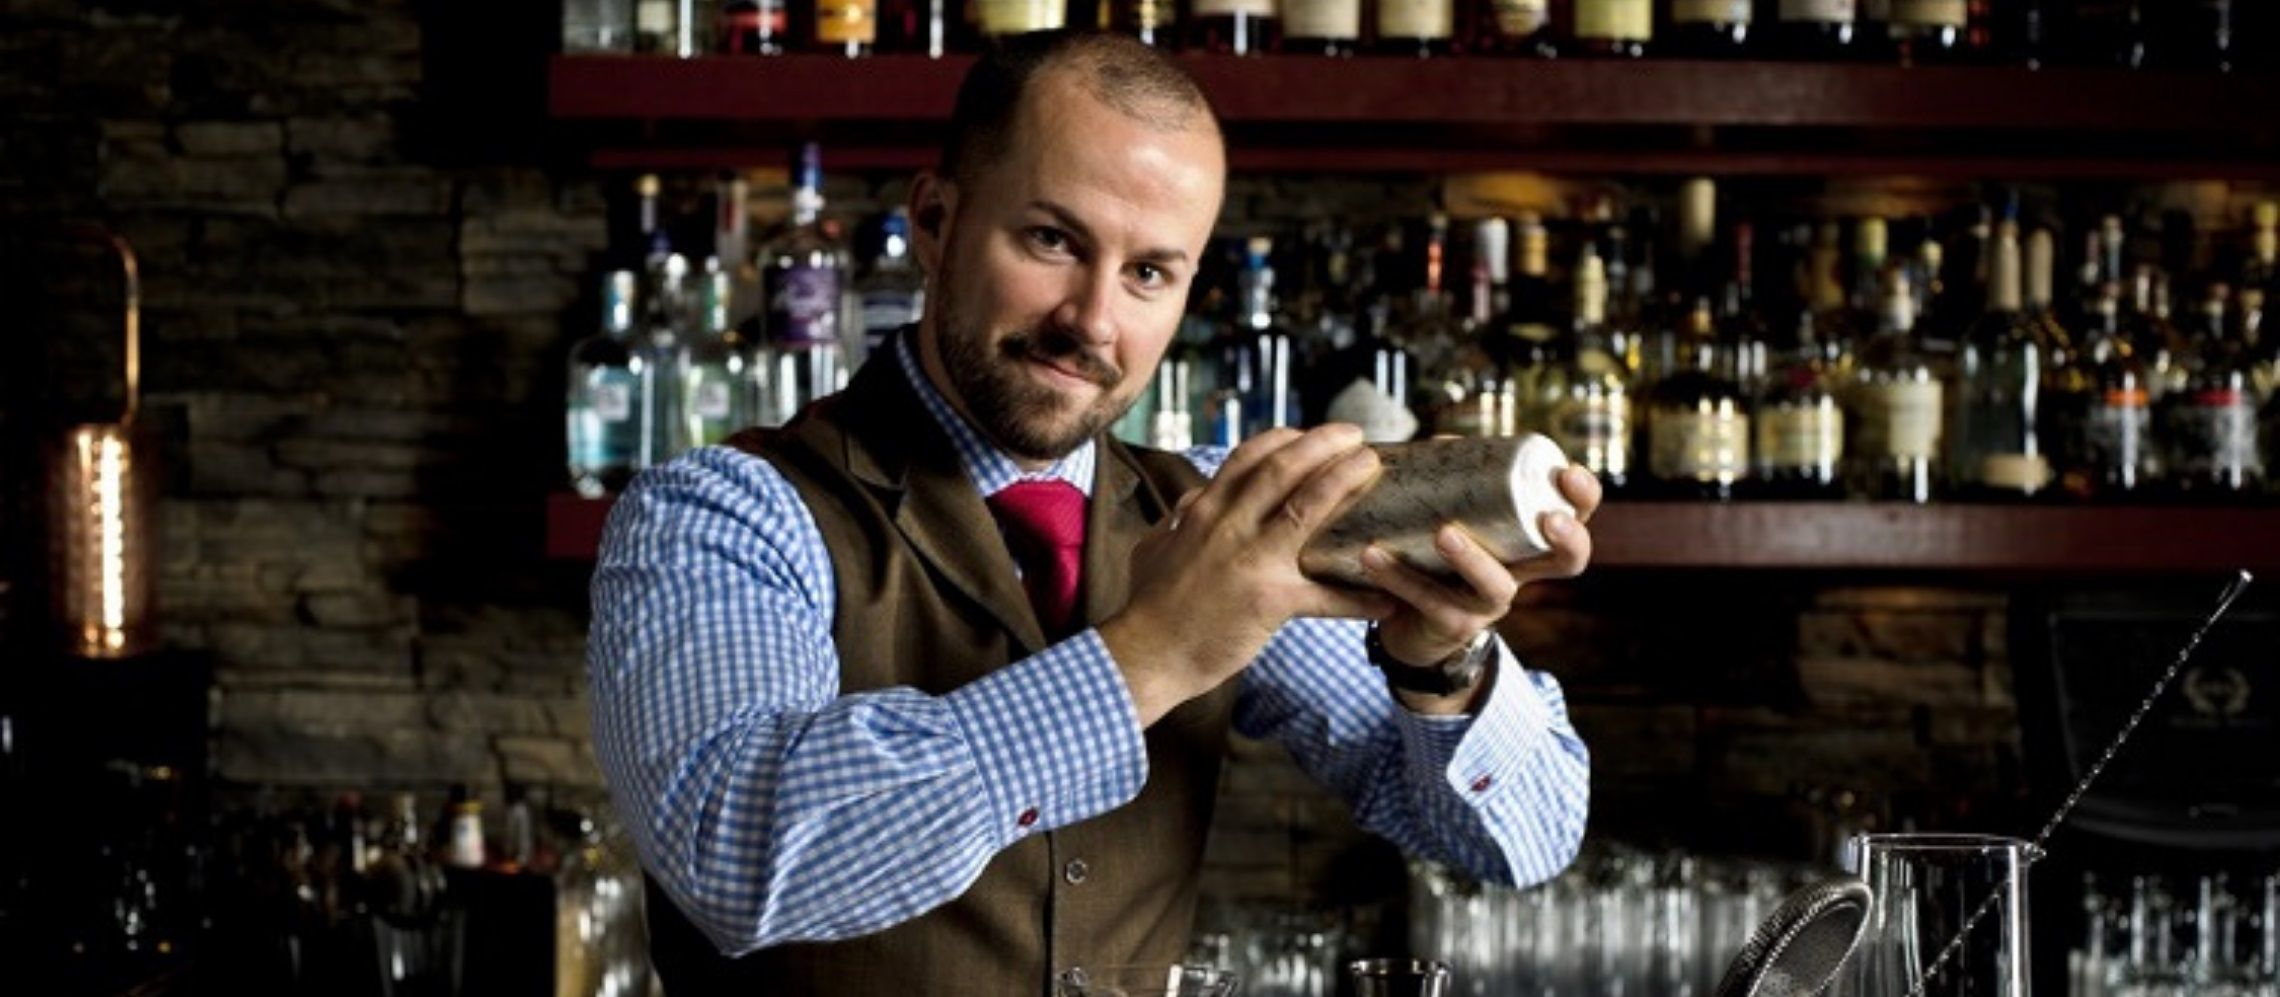 Photo for: Customer Service: What It Takes To Be A Good Bartender